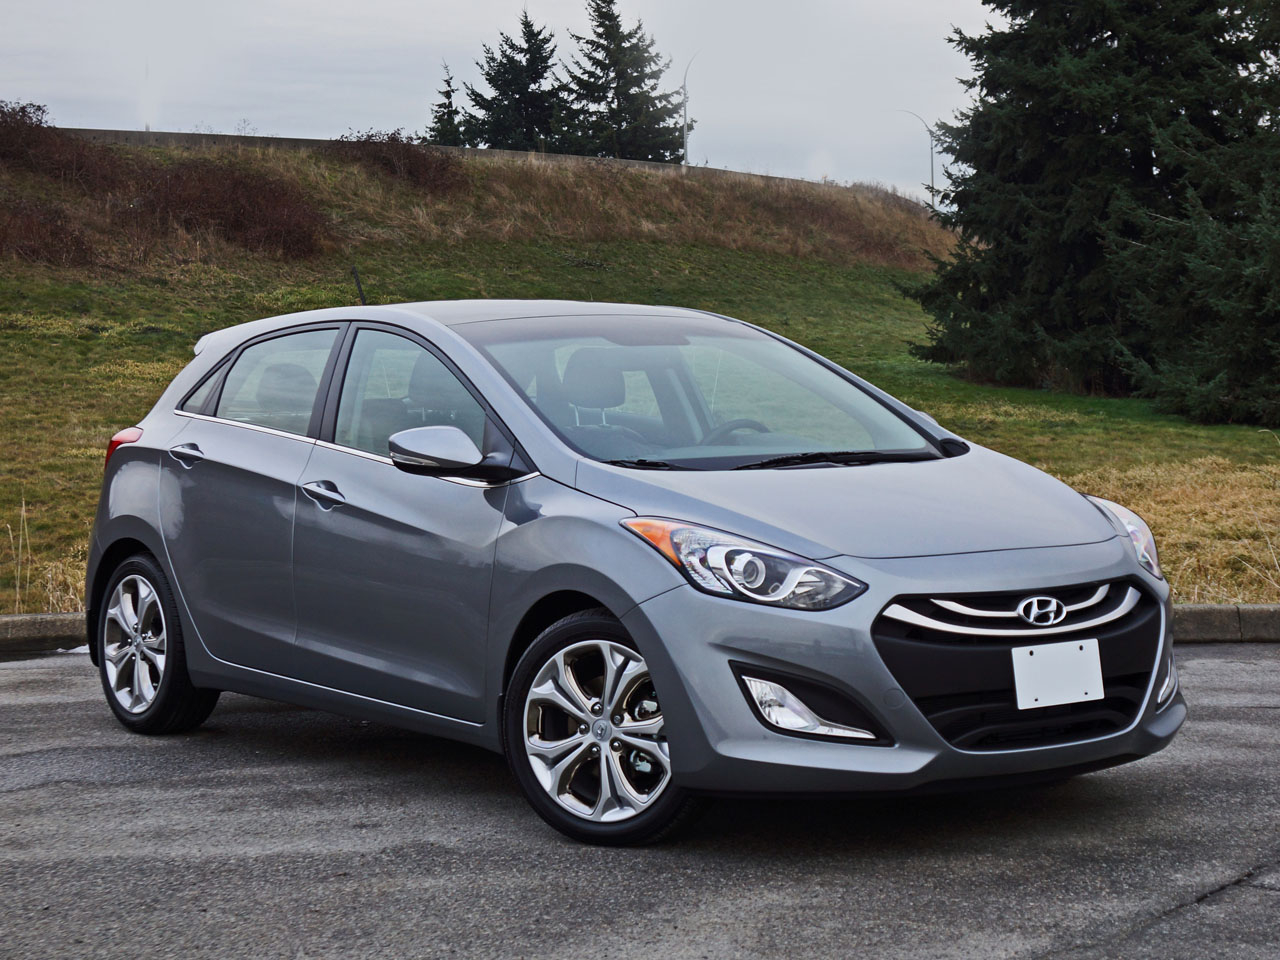 2015 hyundai elantra gt se tech road test review carcostcanada. Black Bedroom Furniture Sets. Home Design Ideas